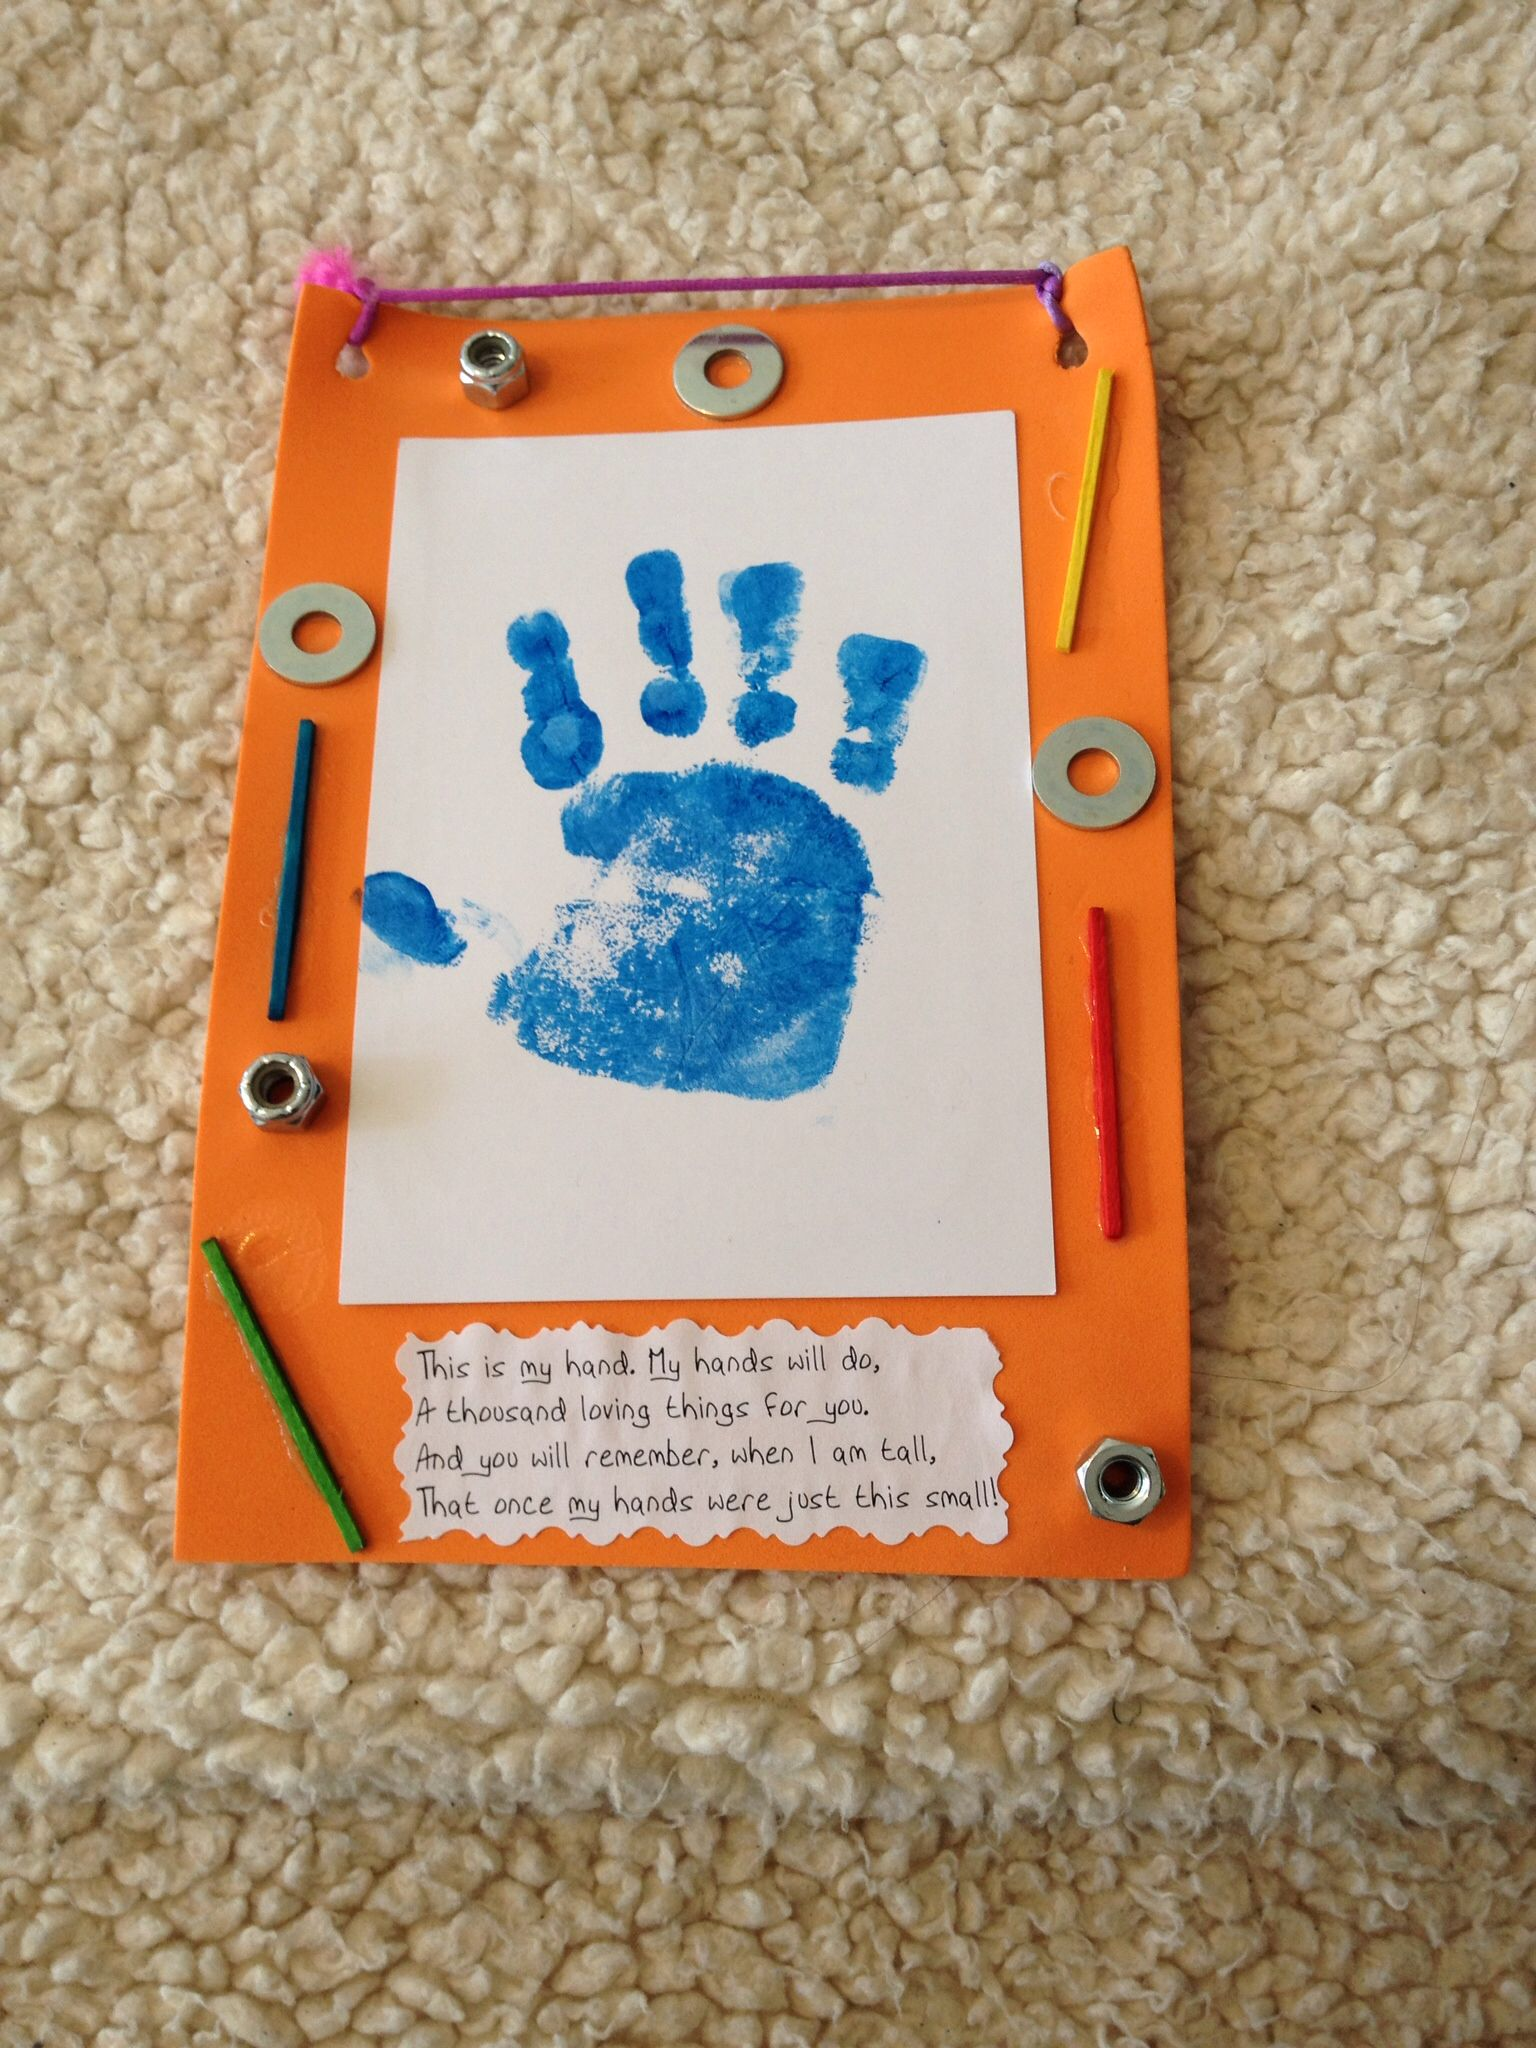 Memory foam for crafts - Father S Day Toddler Craft Made With A Foam Frame Painted Handprint On Paper And